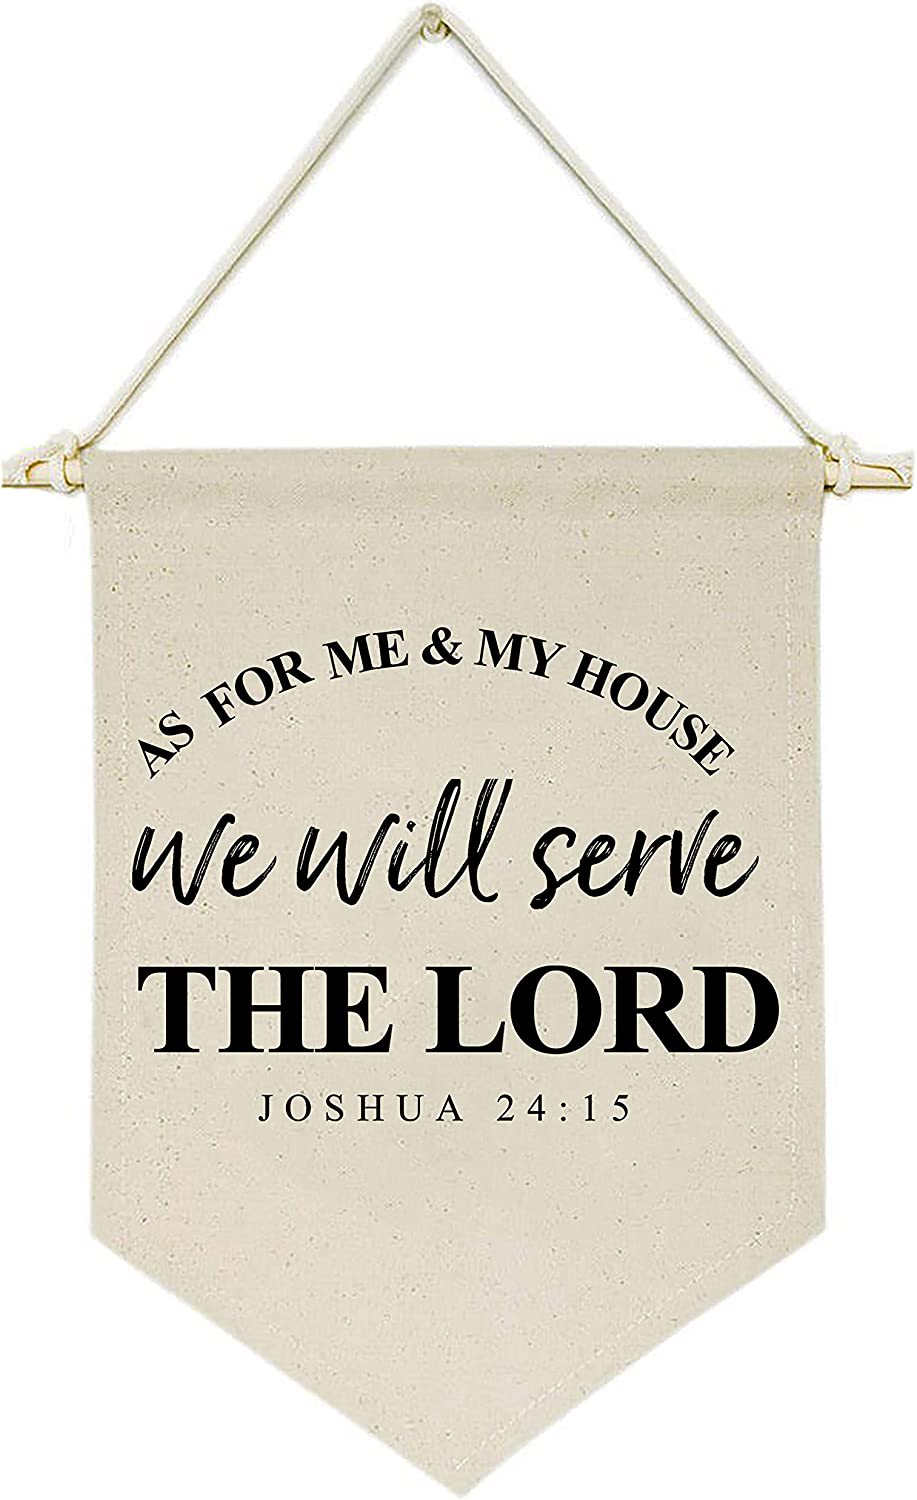 As for Me and My House,We Will Serve the Lord -Housewarming Gift - Canvas Hanging Flag Banner Wall Sign Decor Gift for New Home,Living Room,Bedroom,Front Porch Decor - Bible Verse Scripture Decor